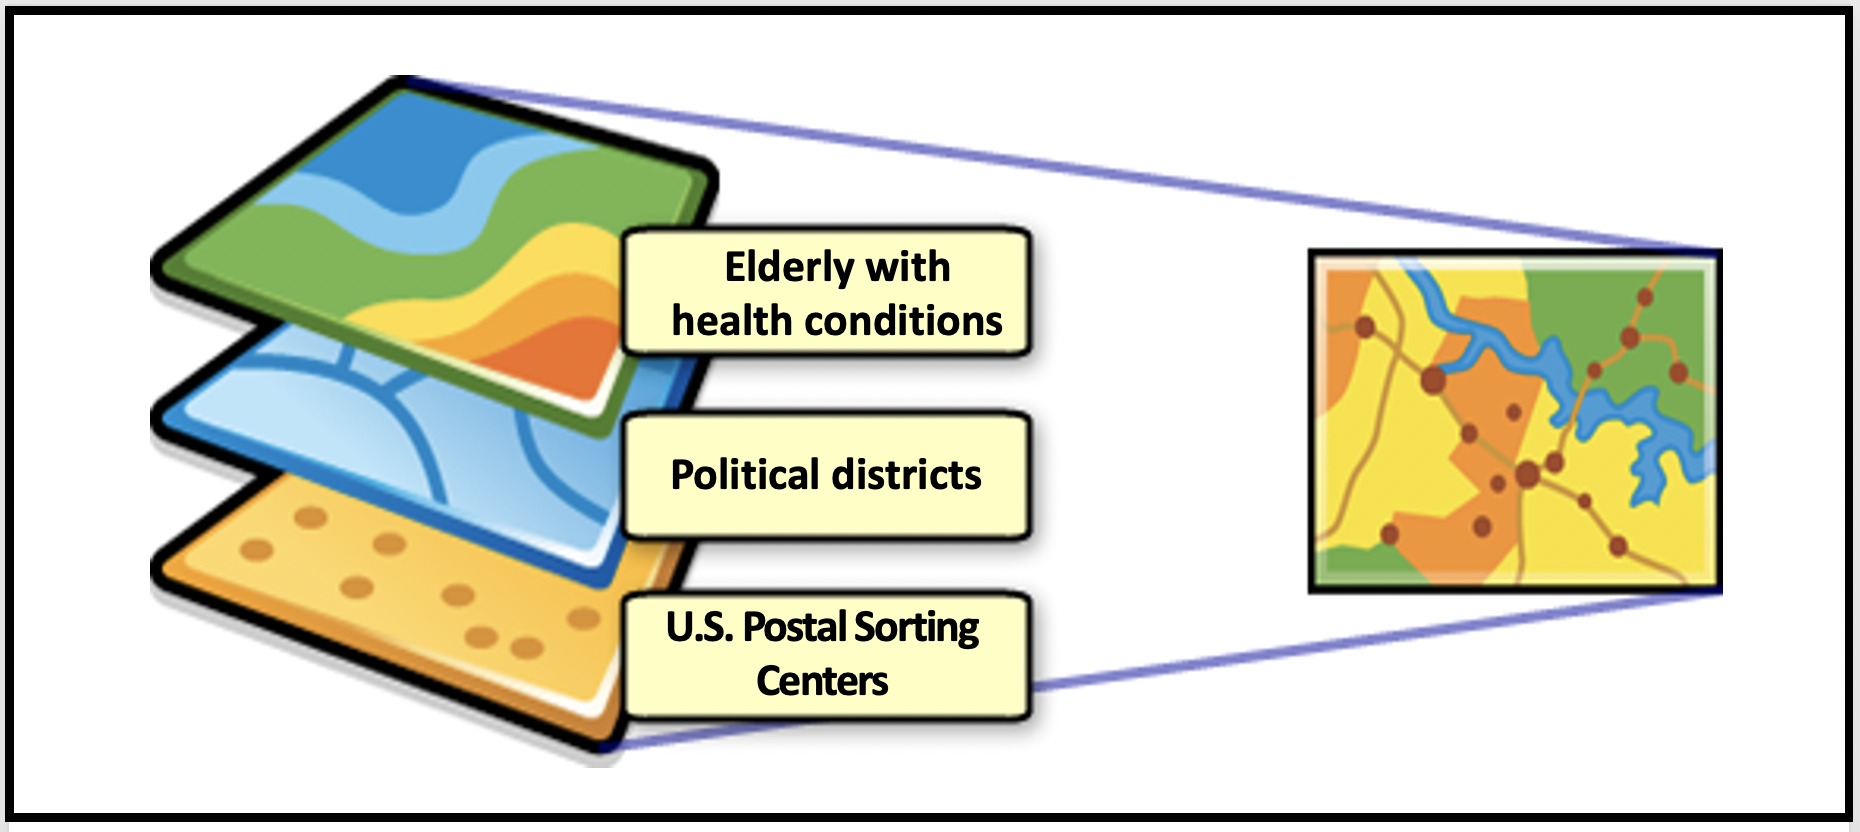 Combining different data layers provide more insights. Here the elderly, those with health conditions, U.S. Postal Sorting Centers and political districts are shown.